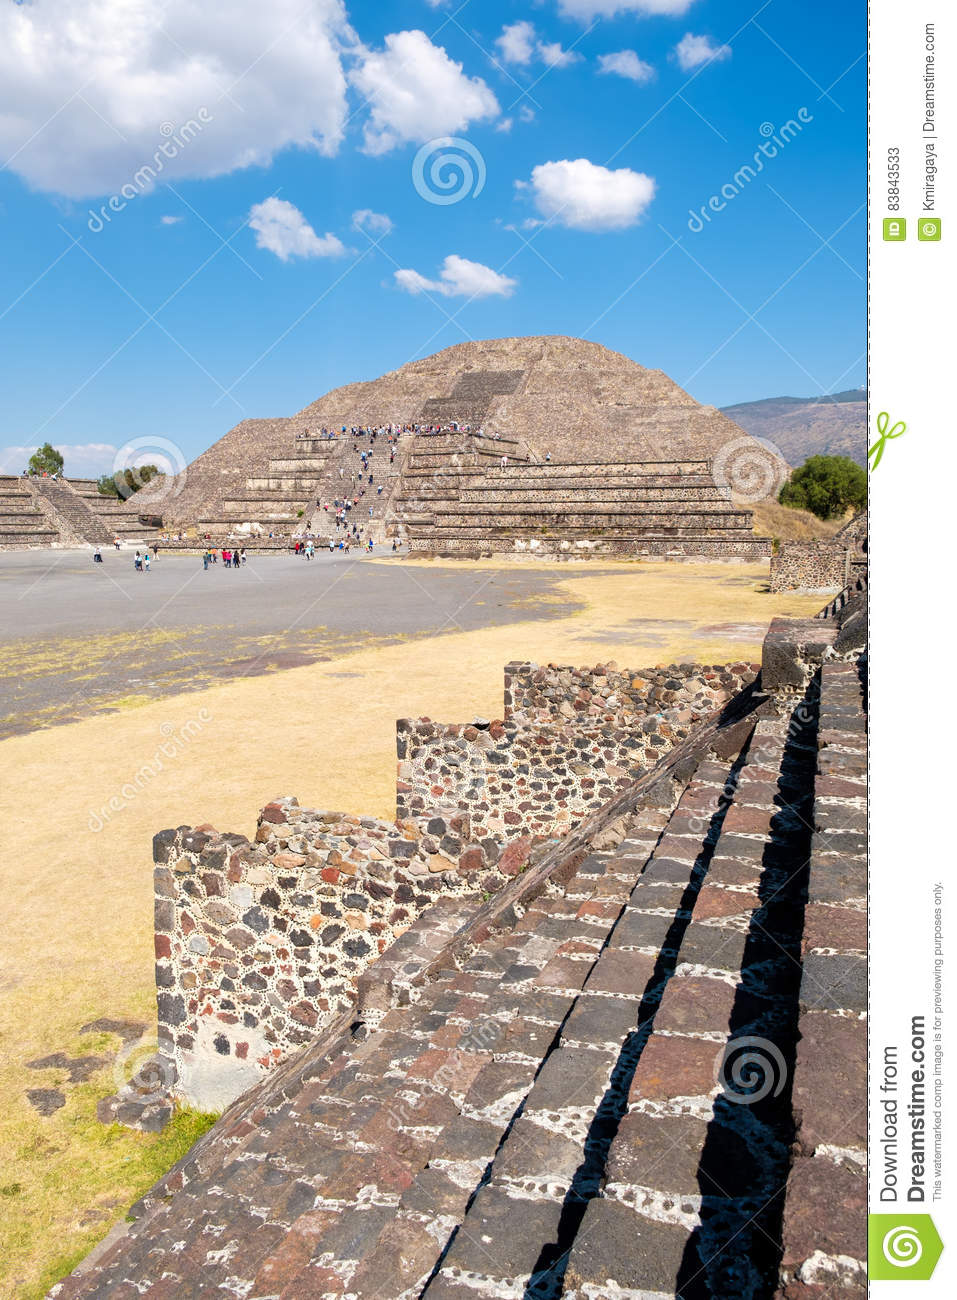 The Pyramid Of The Moon And Other Ancient Ruins At